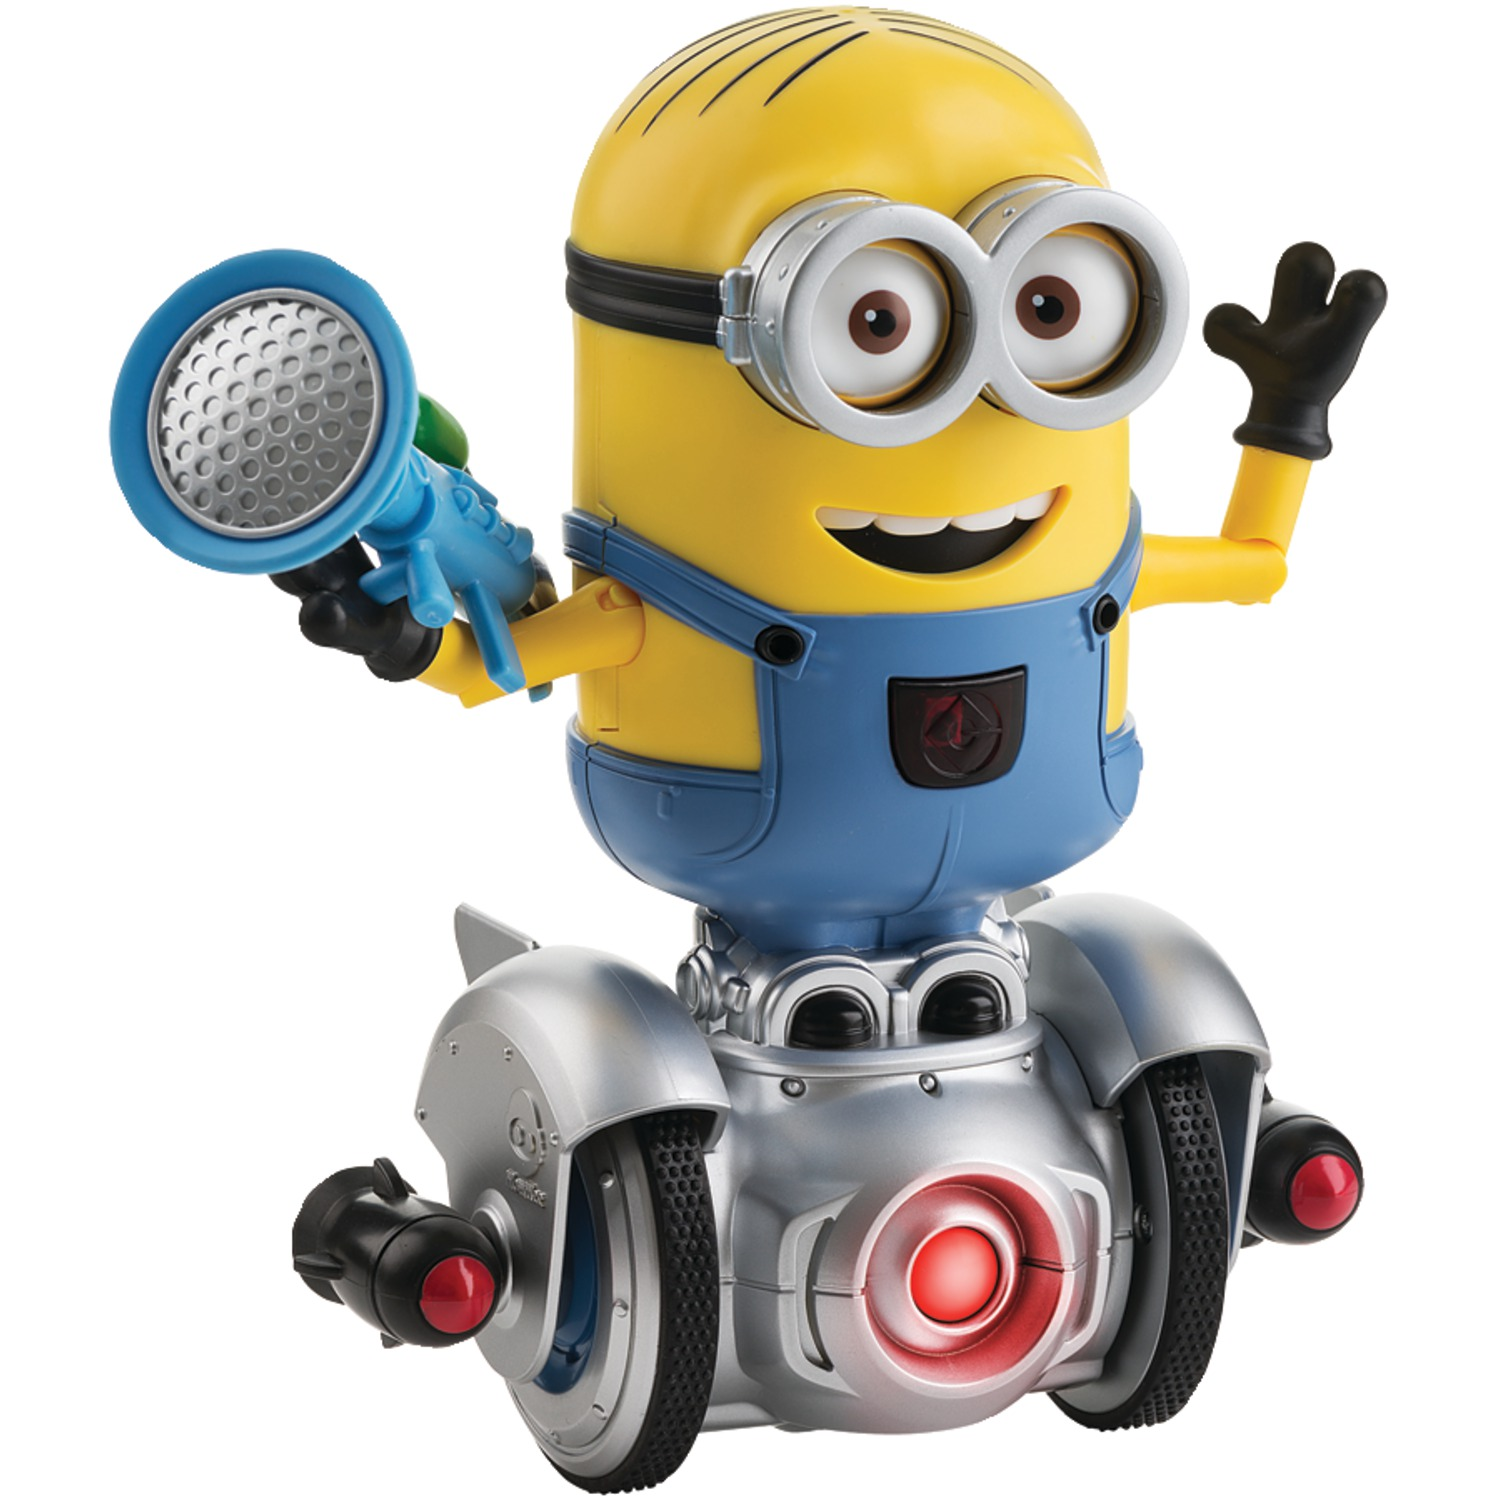 Minion MiP Turbo Dave Robot